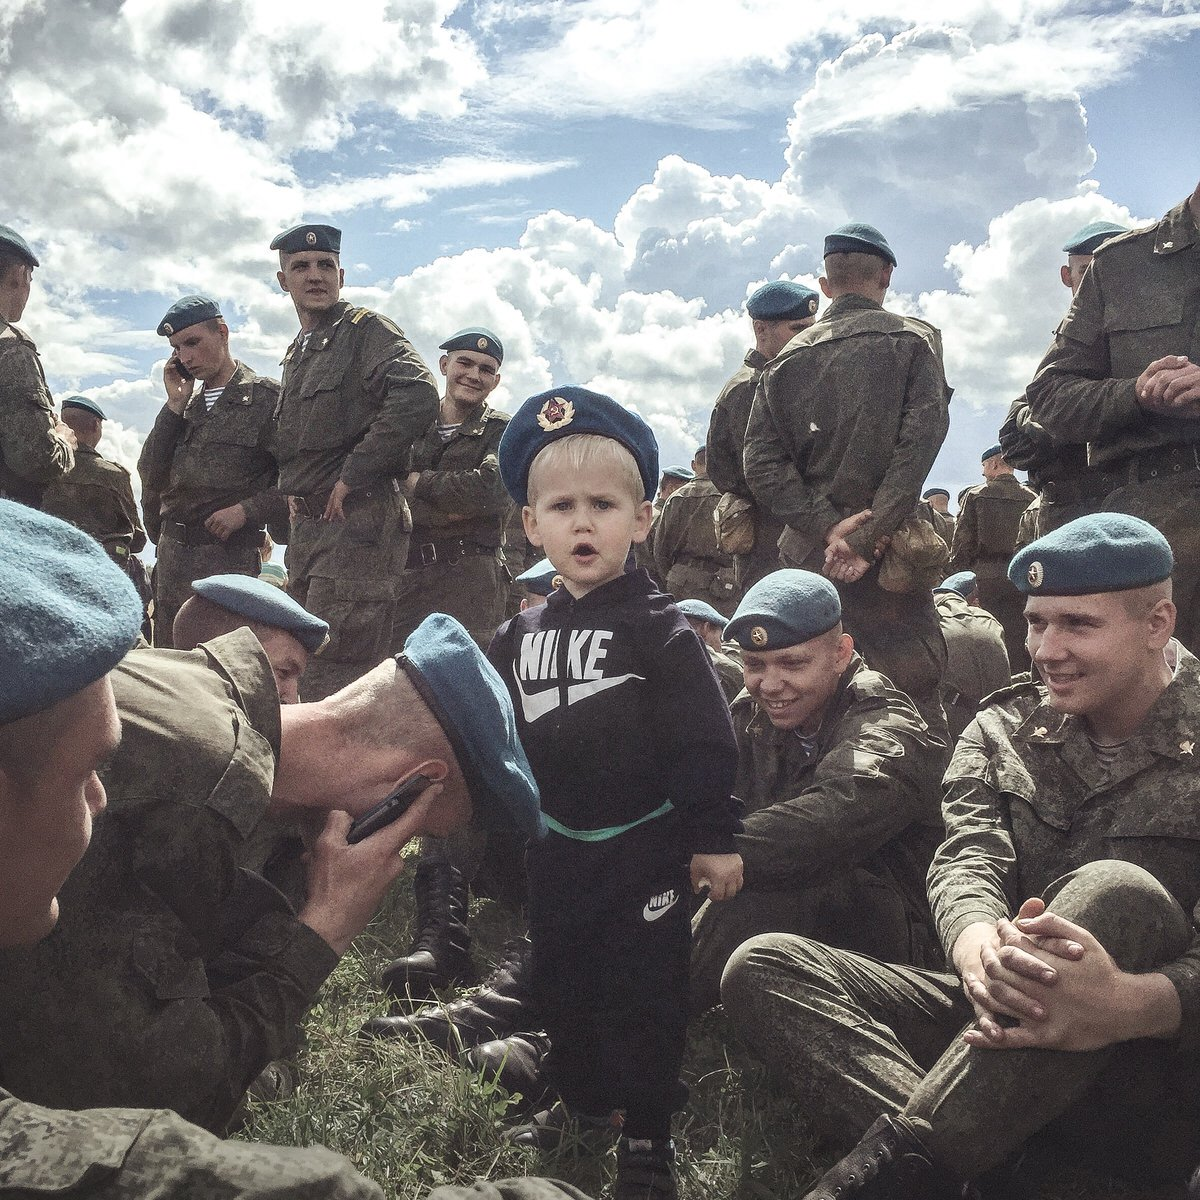 Image of Paratroopers Day in Pskov by Dmitry Markov.